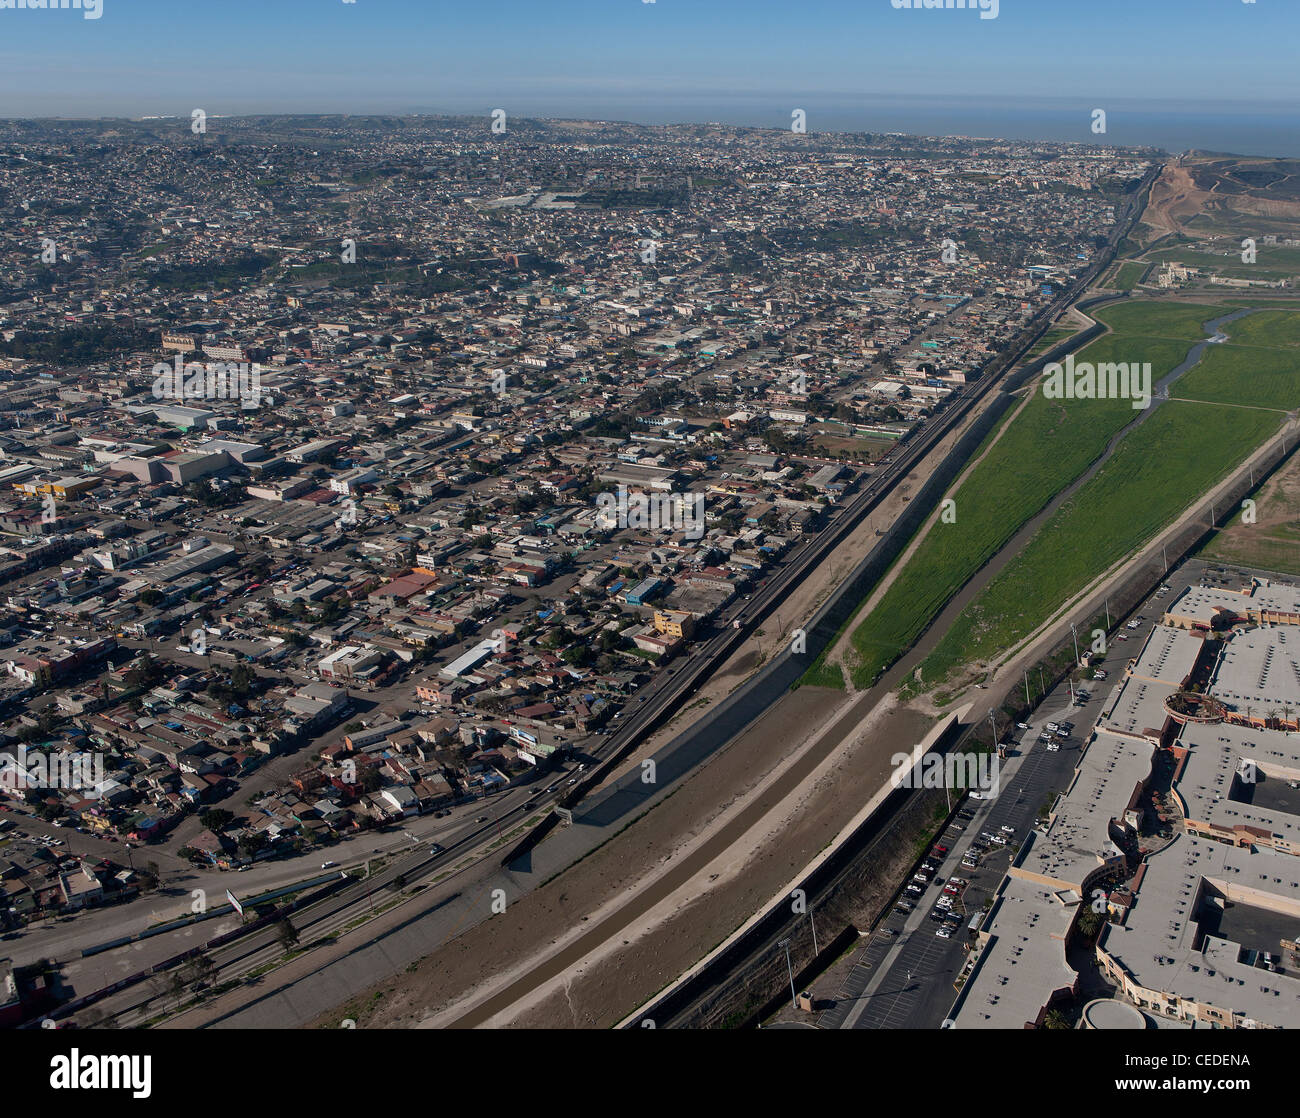 aerial photograph Mexican American border fence Tijuana Mexico - Stock Image